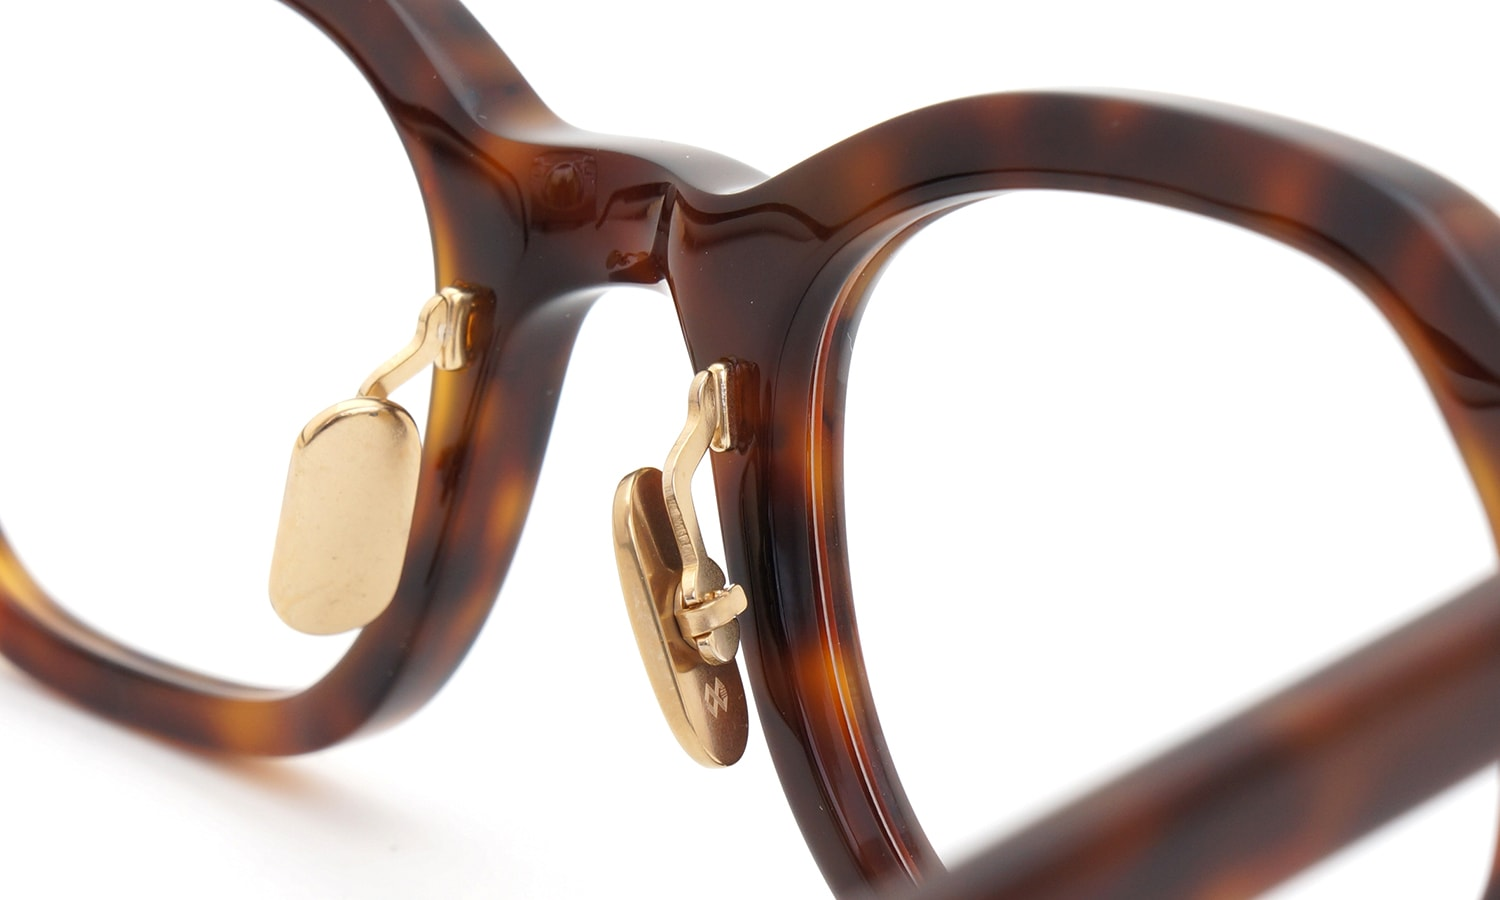 OG × OLIVER GOLDSMITH Re:BETSY 45 リ:ベッツィ 8